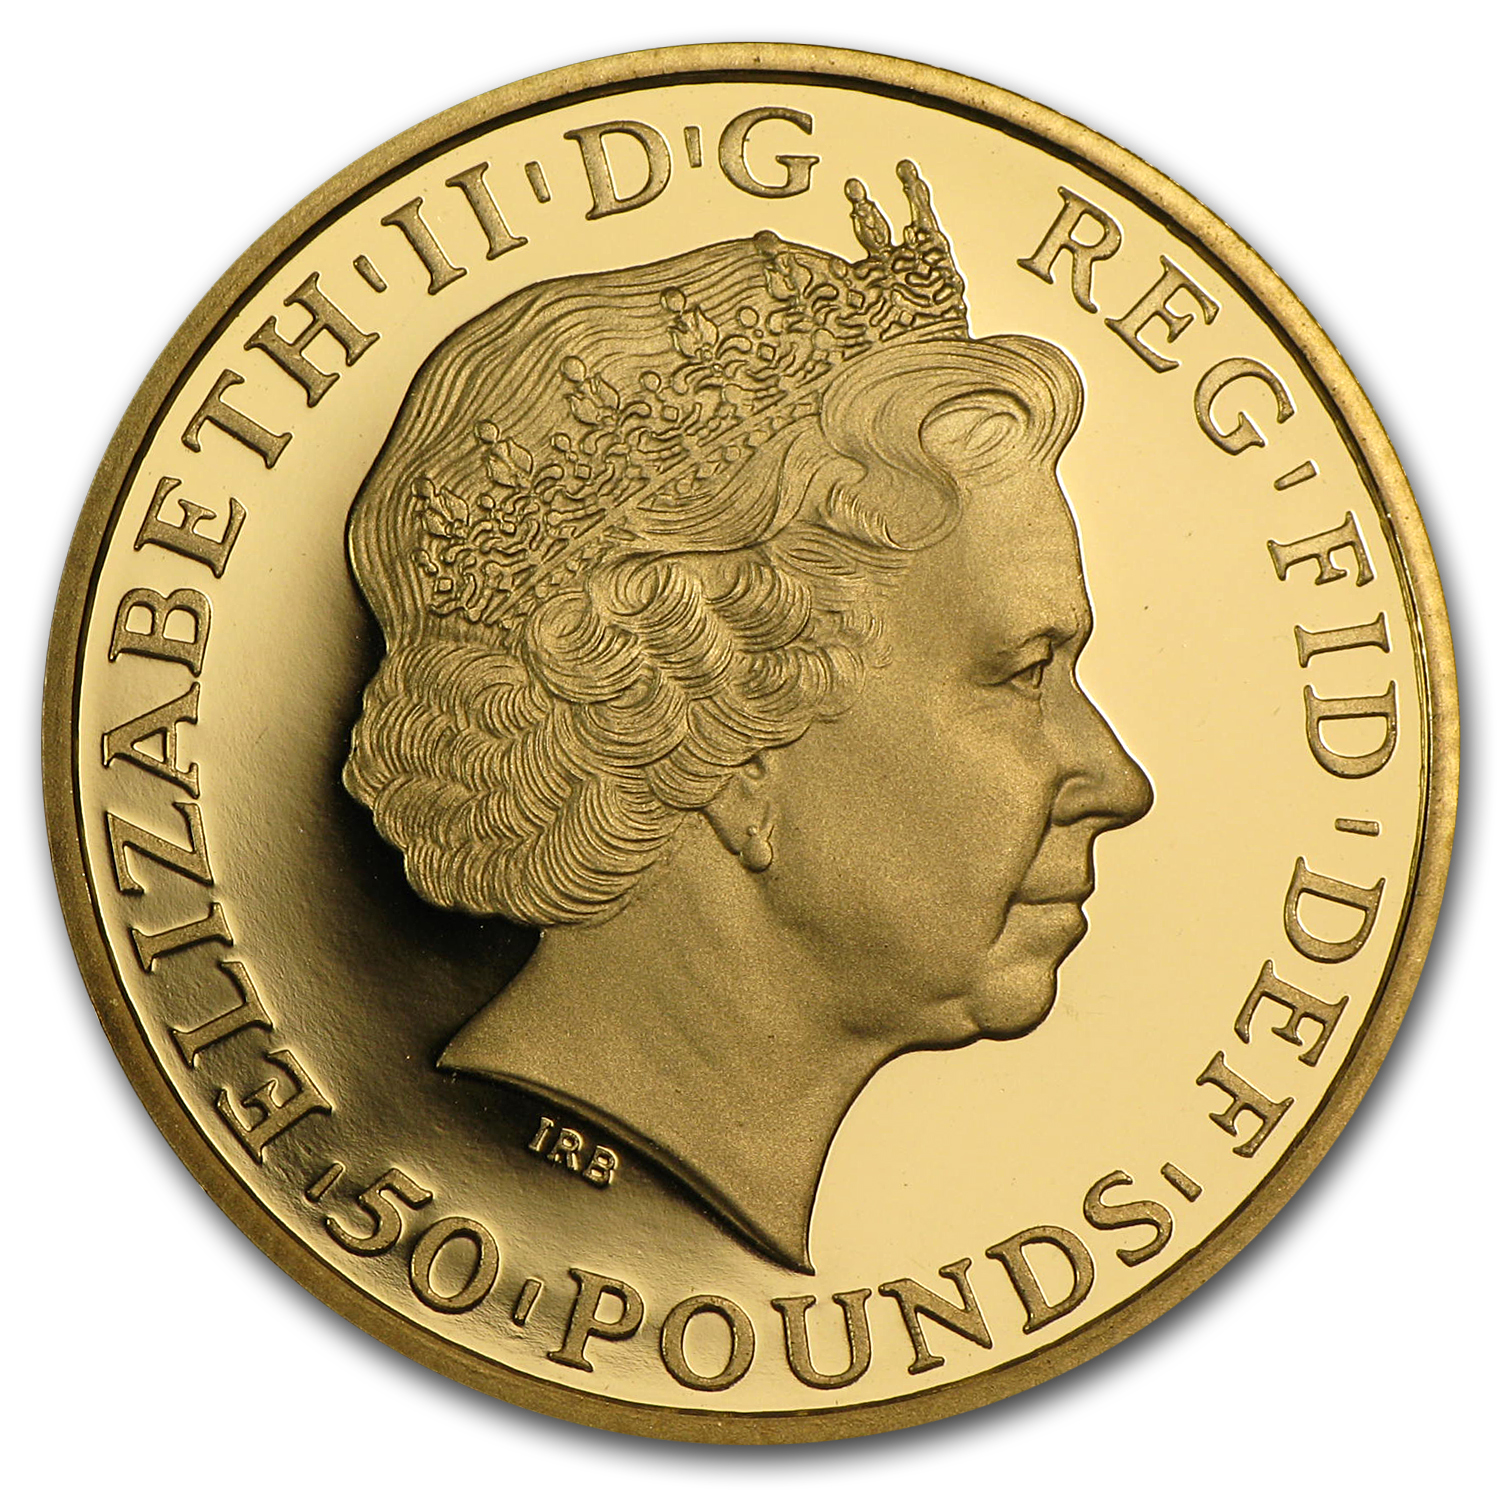 2011 1/2 oz Proof Gold Britannia - Capsule